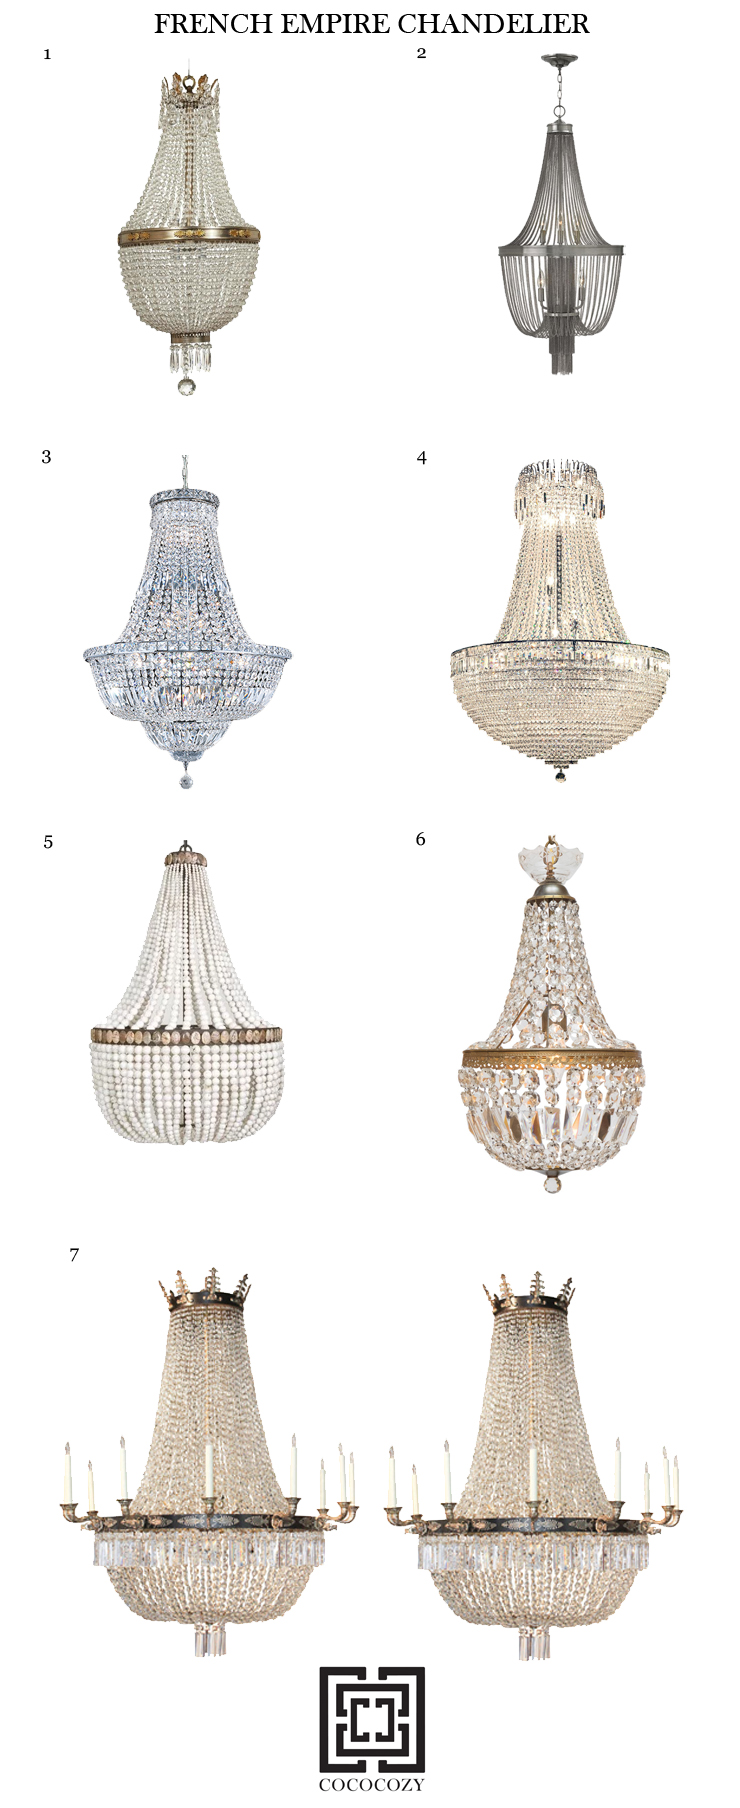 9 Elegant French Empire Chandeliers Cococozy